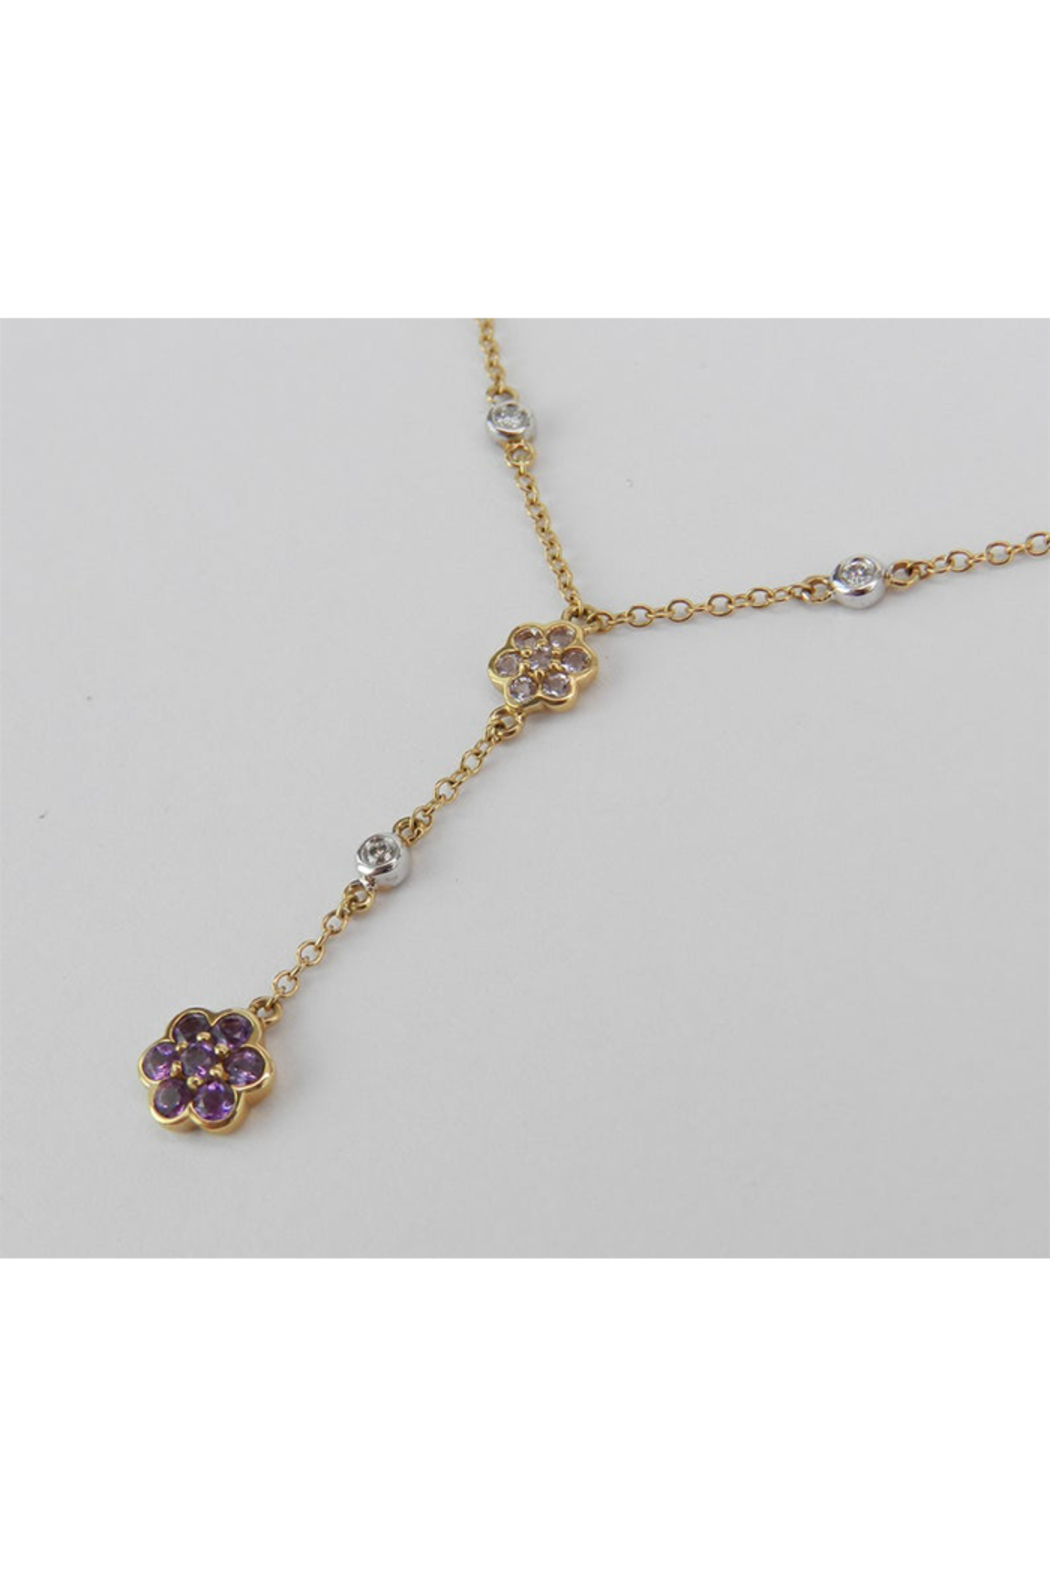 Margolin & Co 14K Yellow Gold Diamond, Tanzanite and Amethyst Flower cluster Necklace - Side Cropped Image